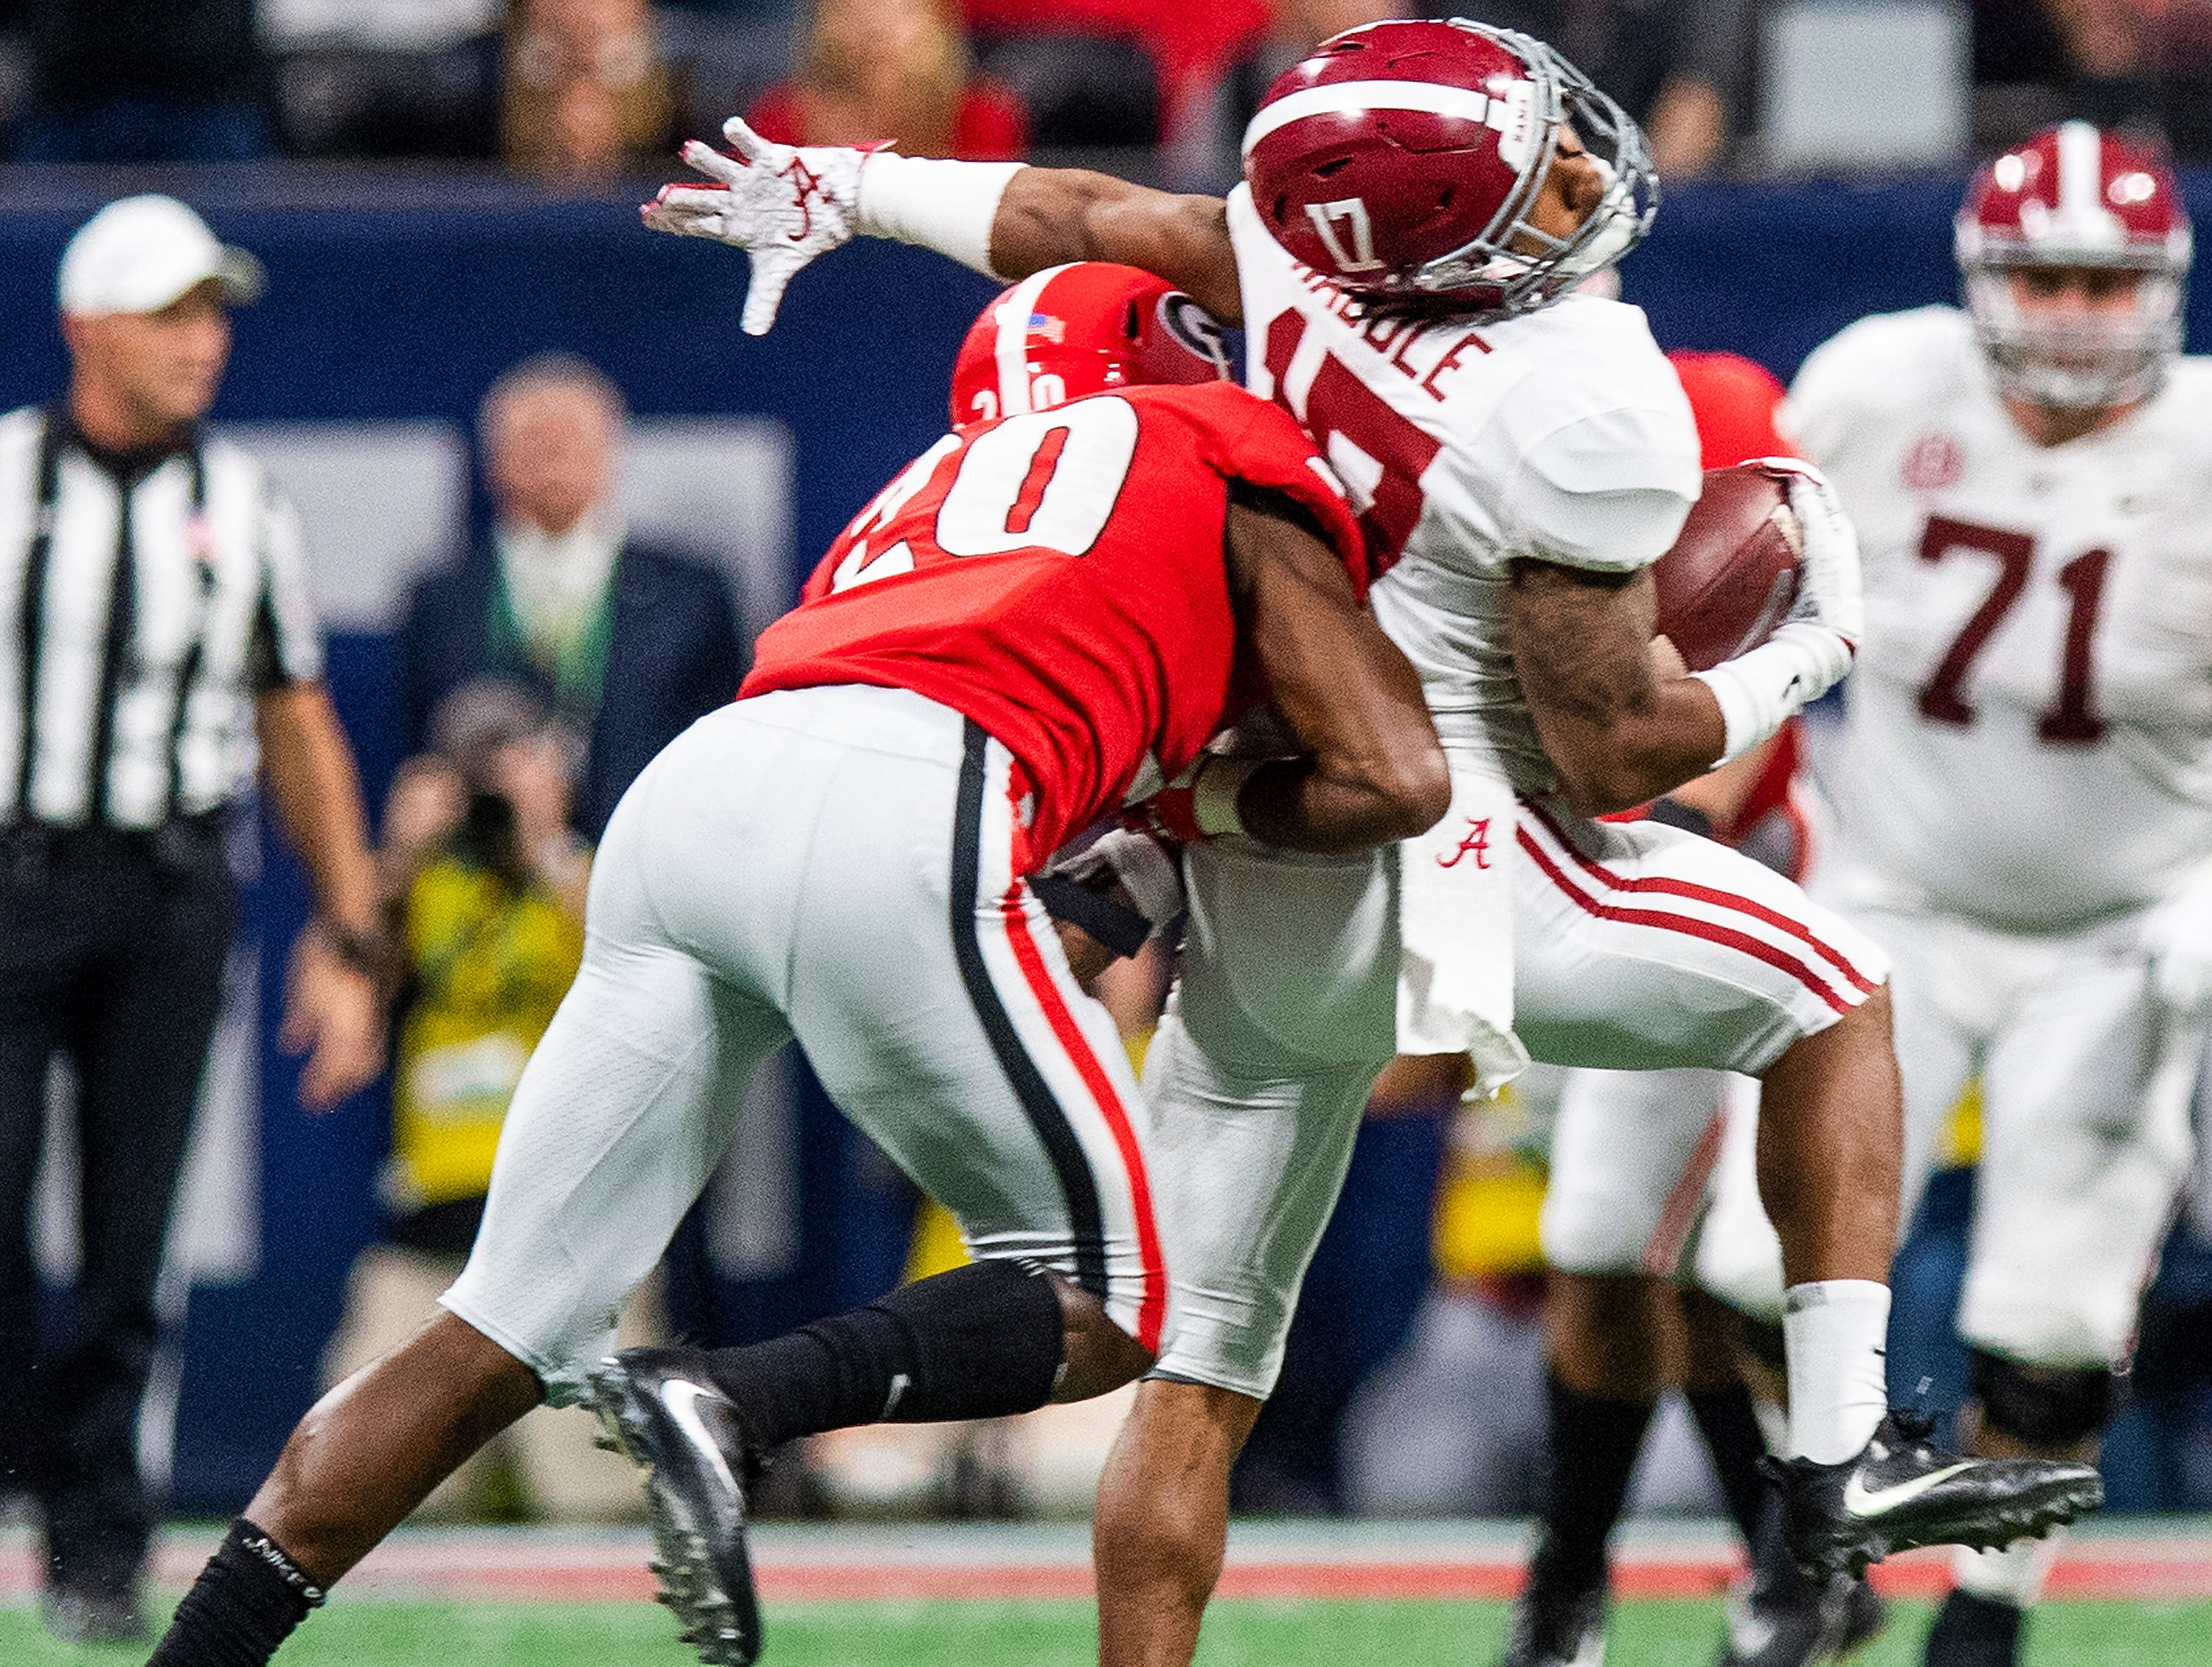 Georgia defensive back J.R. Reed (20) his Alabama wide receiver Jaylen Waddle (17) during the SEC Championship Game at Mercedes Benz Stadium in Atlanta, Ga., on Saturday December 1, 2018.